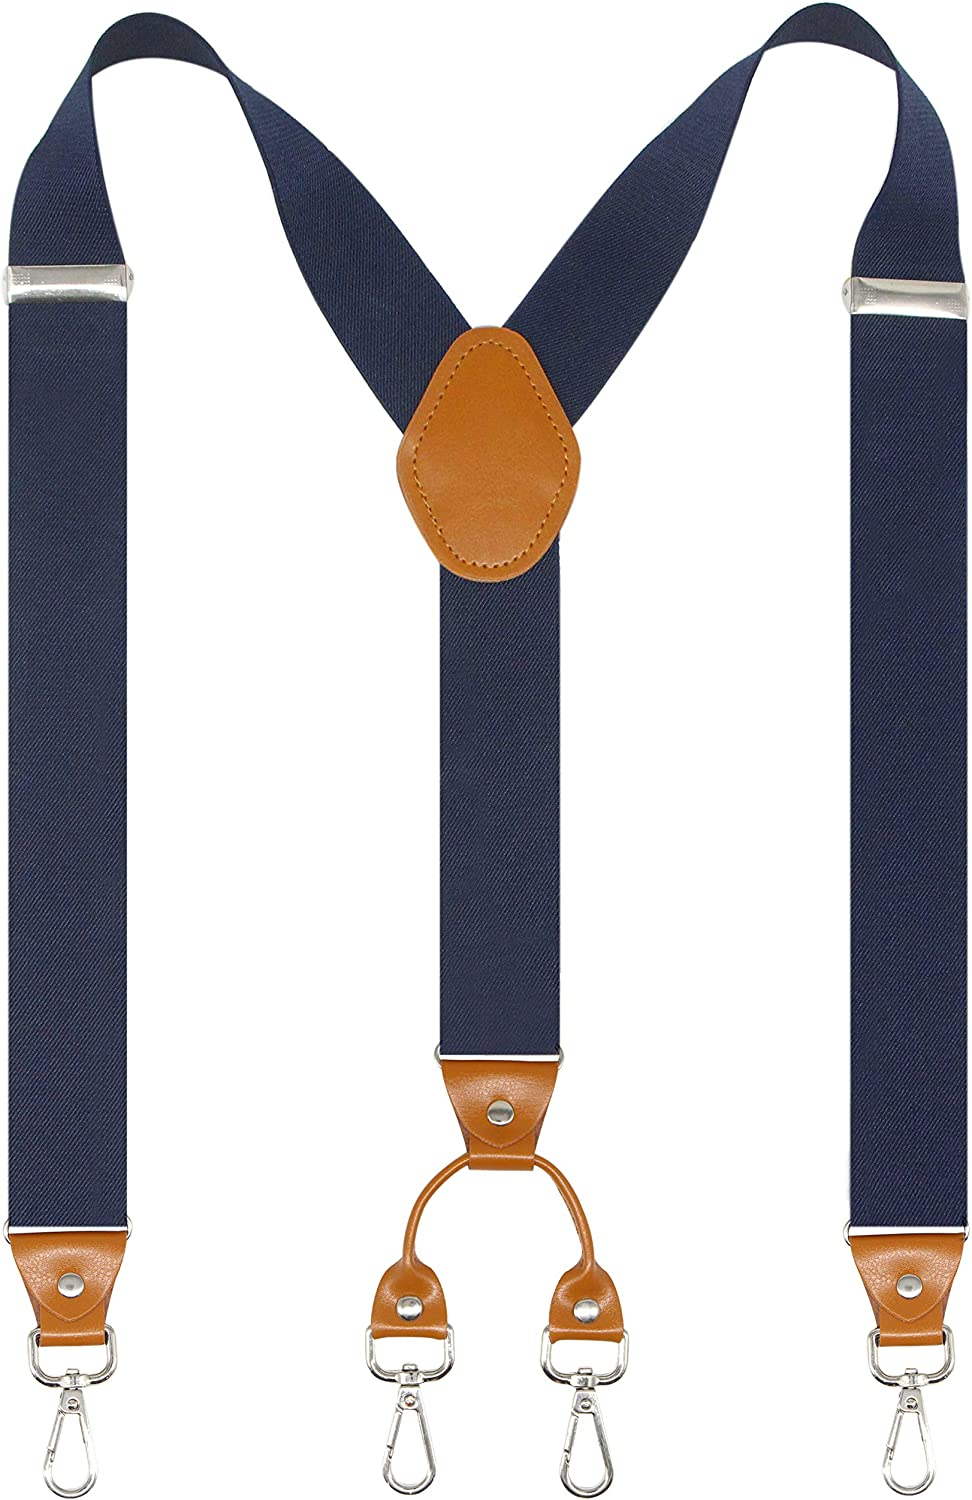 Doloise Men's Suspender Wide Adjustable and Elastic Braces Y Shape with Very Strong Hooks-Heavy Duty